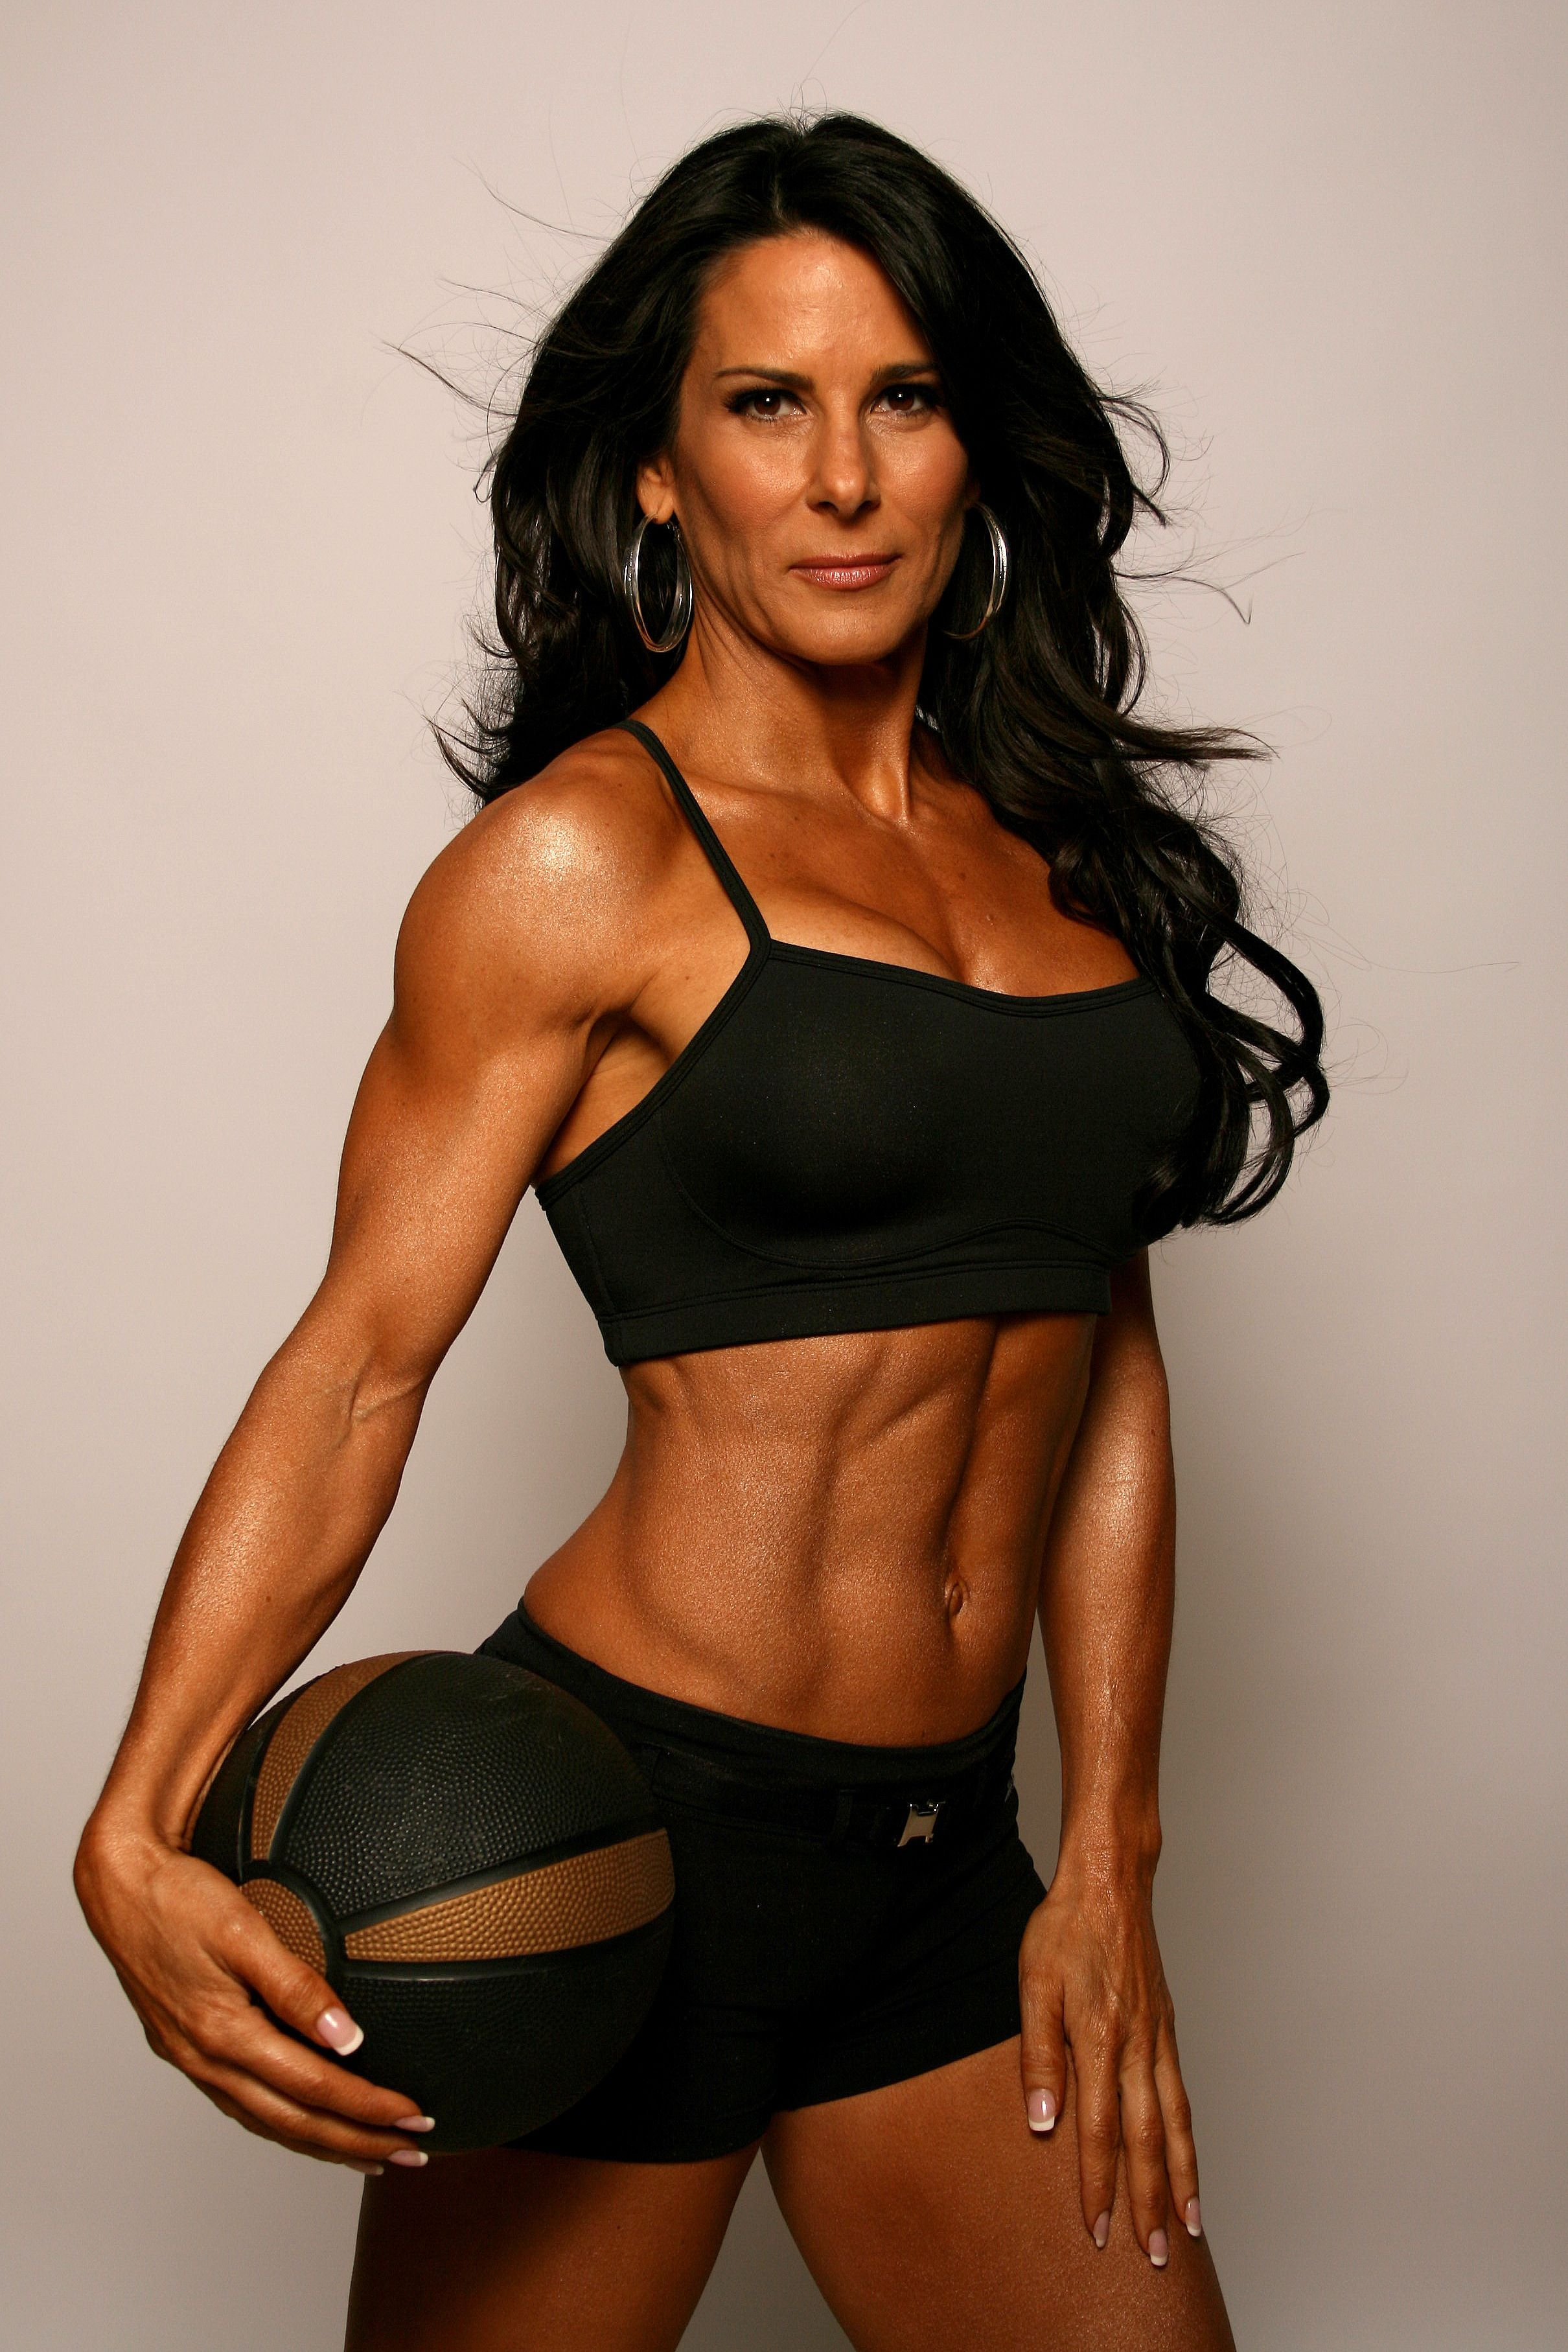 Laura London Abs Laura London Fitness Motivation Fit